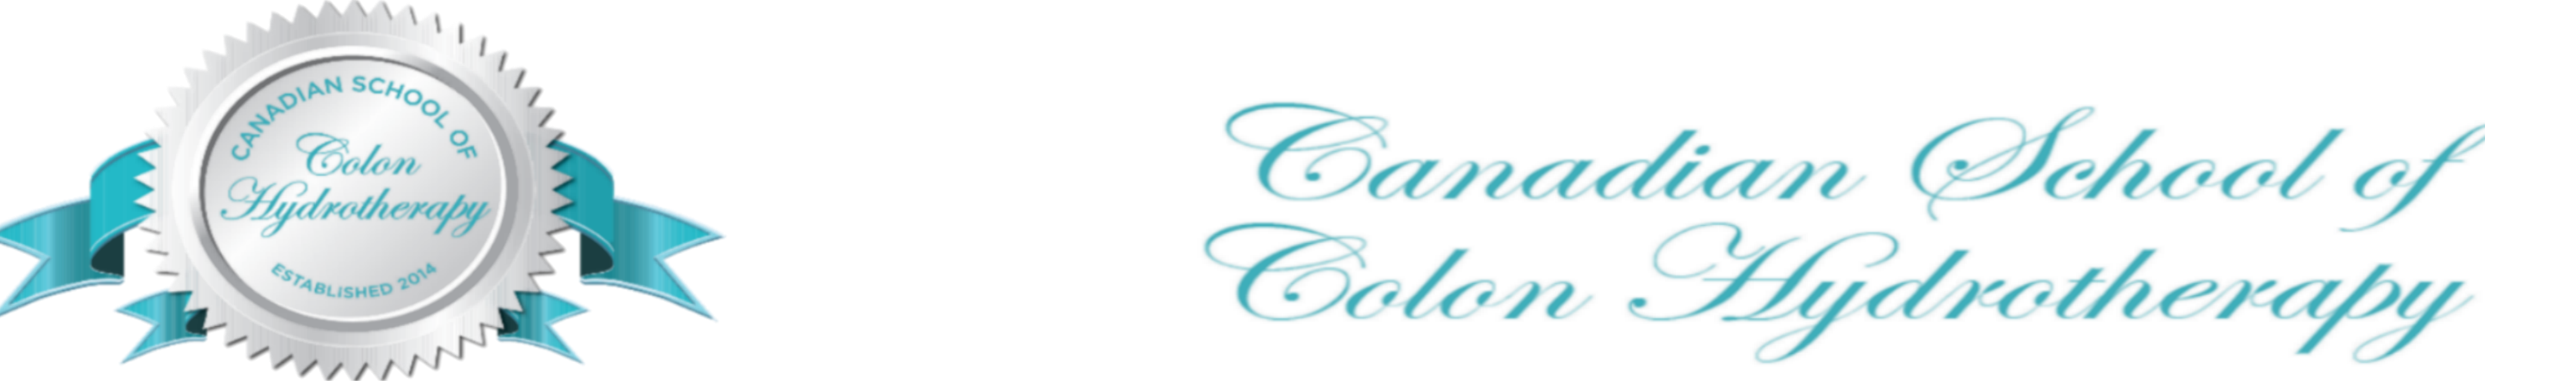 Canadian School of Colon Hydrotherapy